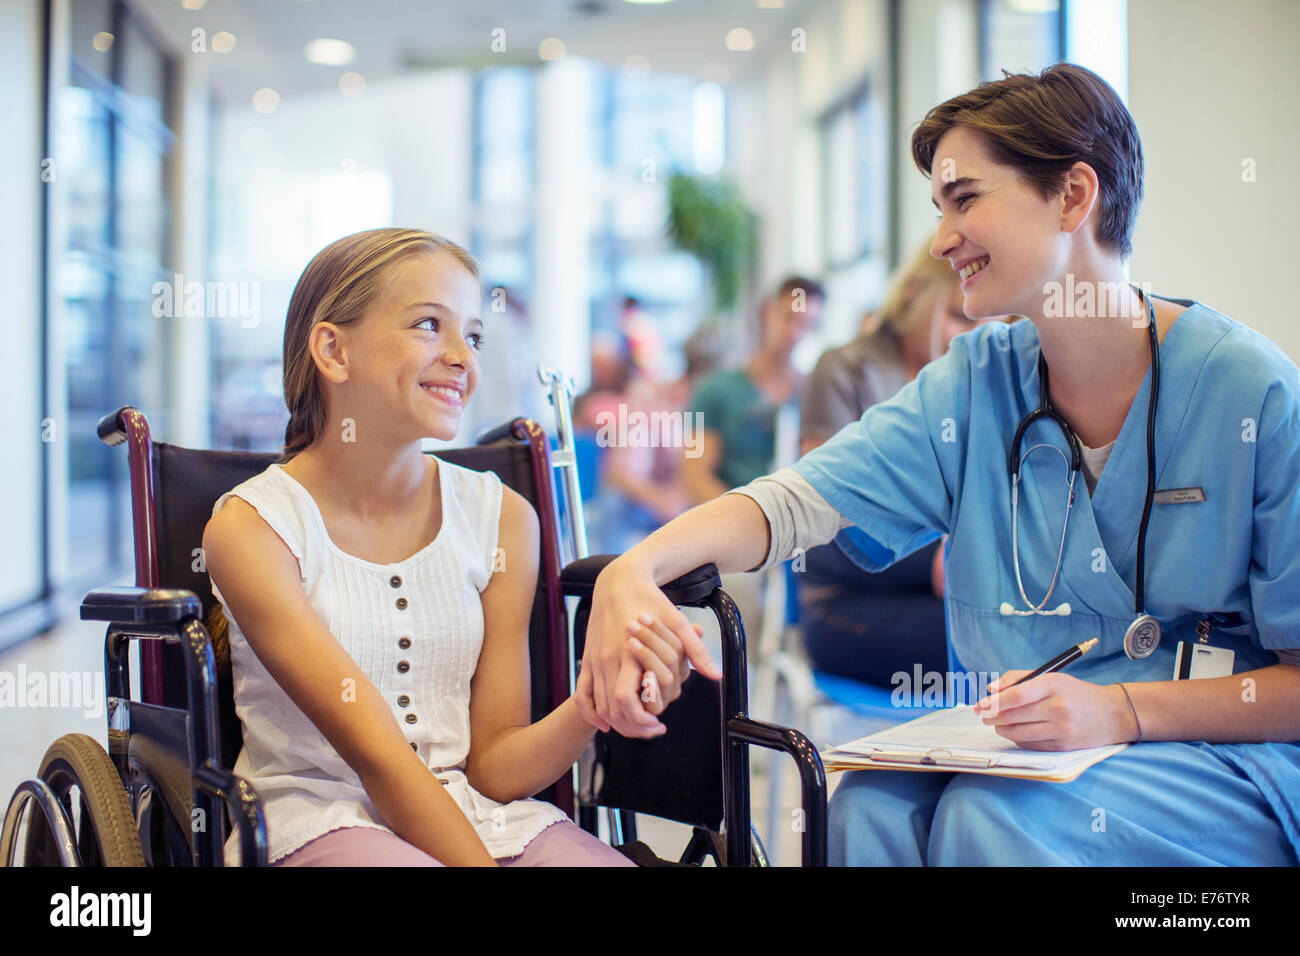 Nurse holding patient's hands in hospital - Stock Image